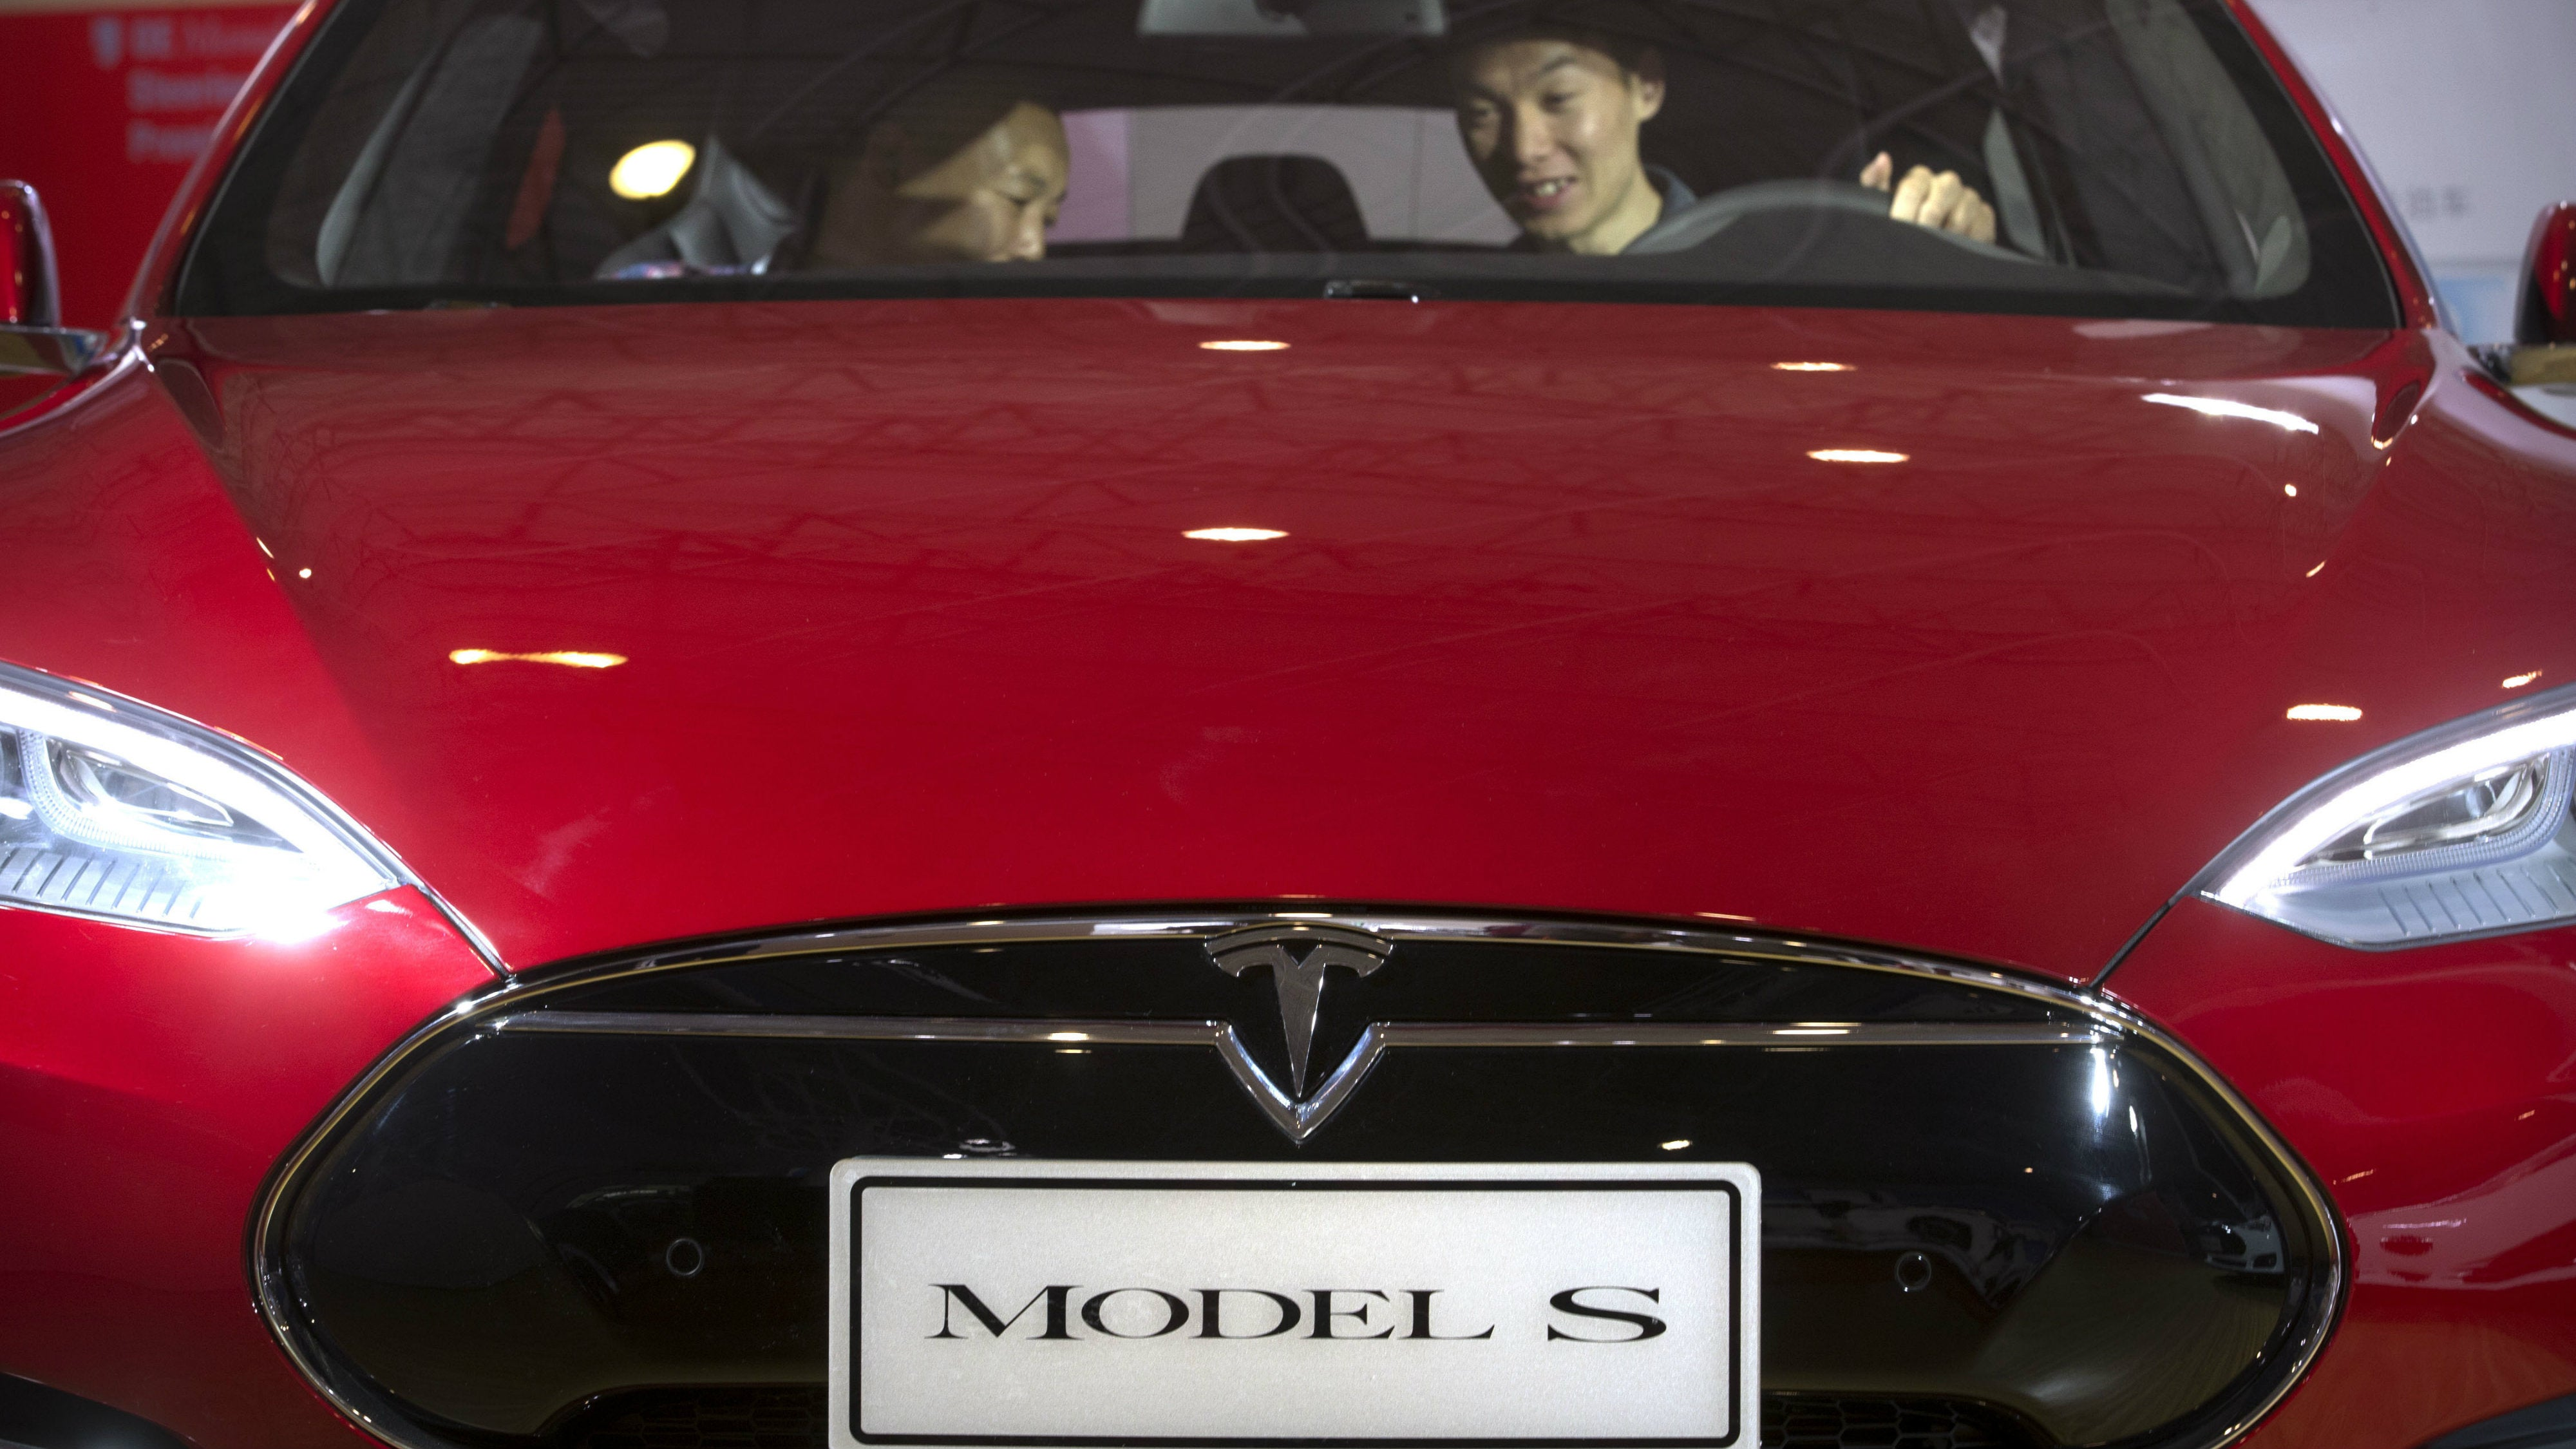 Researchers Hack A Tesla From 19 Kilometres Away